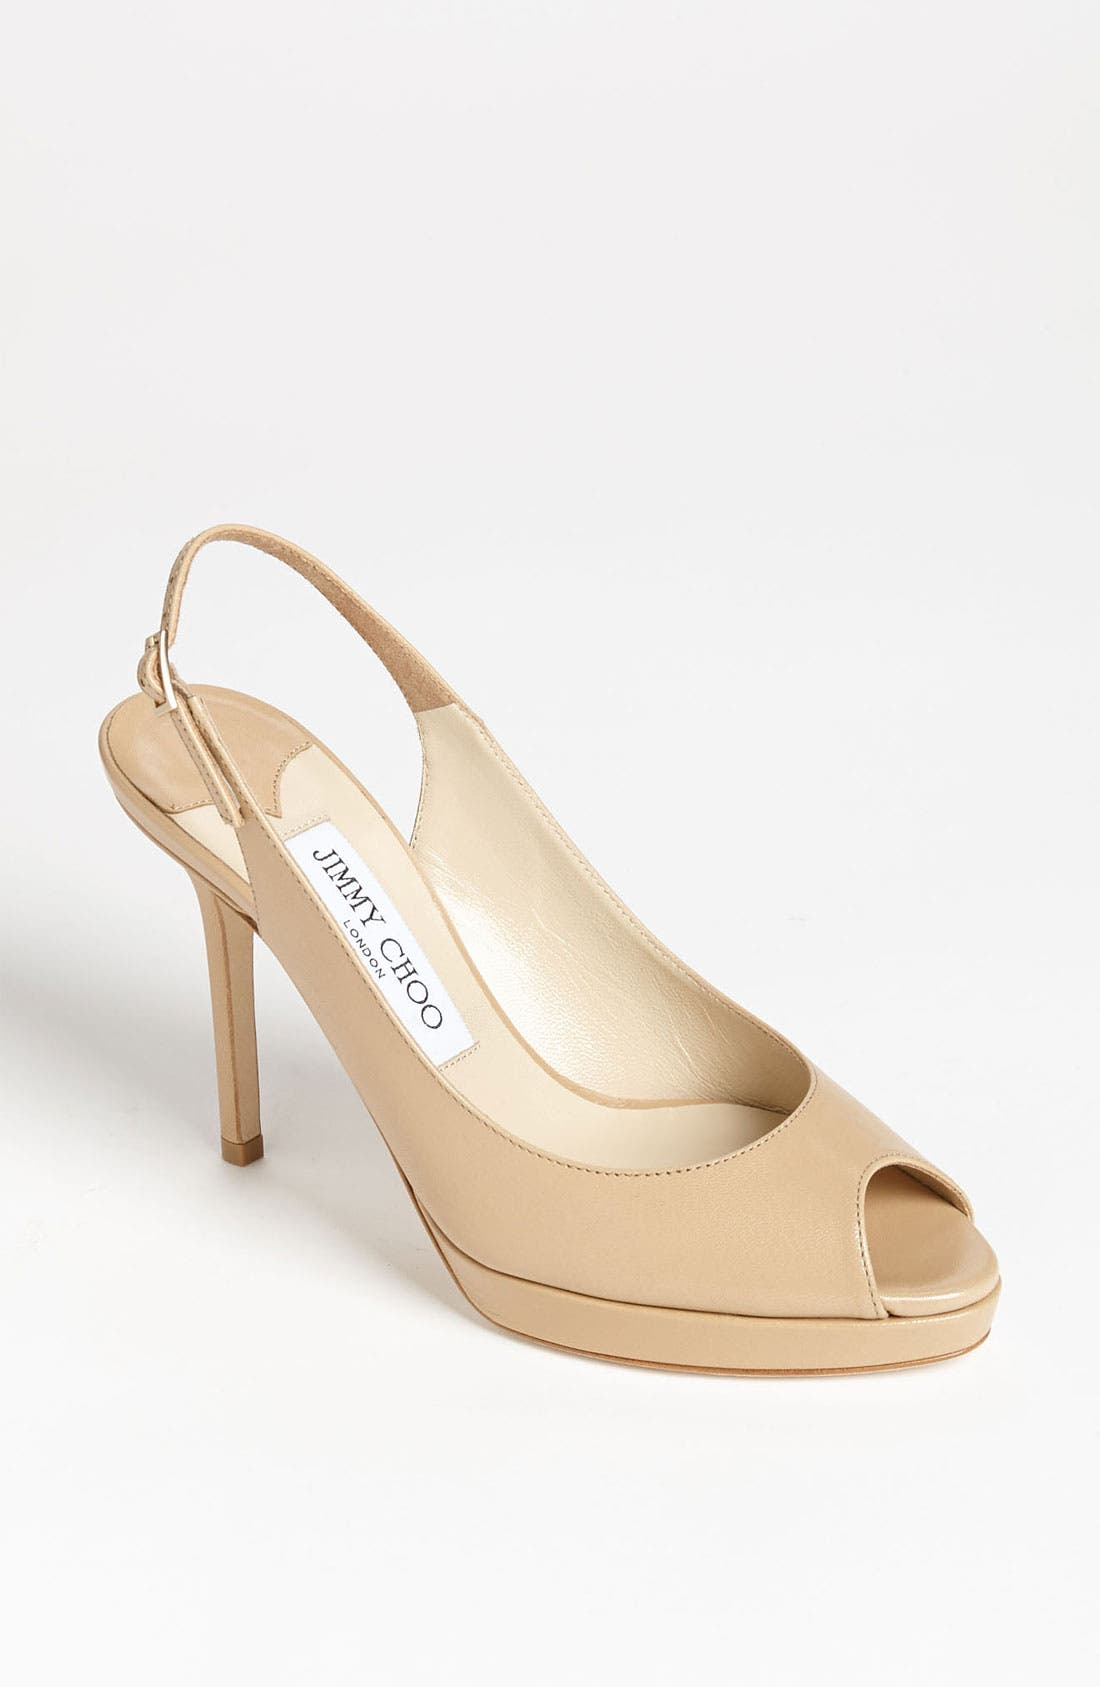 Alternate Image 1 Selected - Jimmy Choo 'Nova' Pump